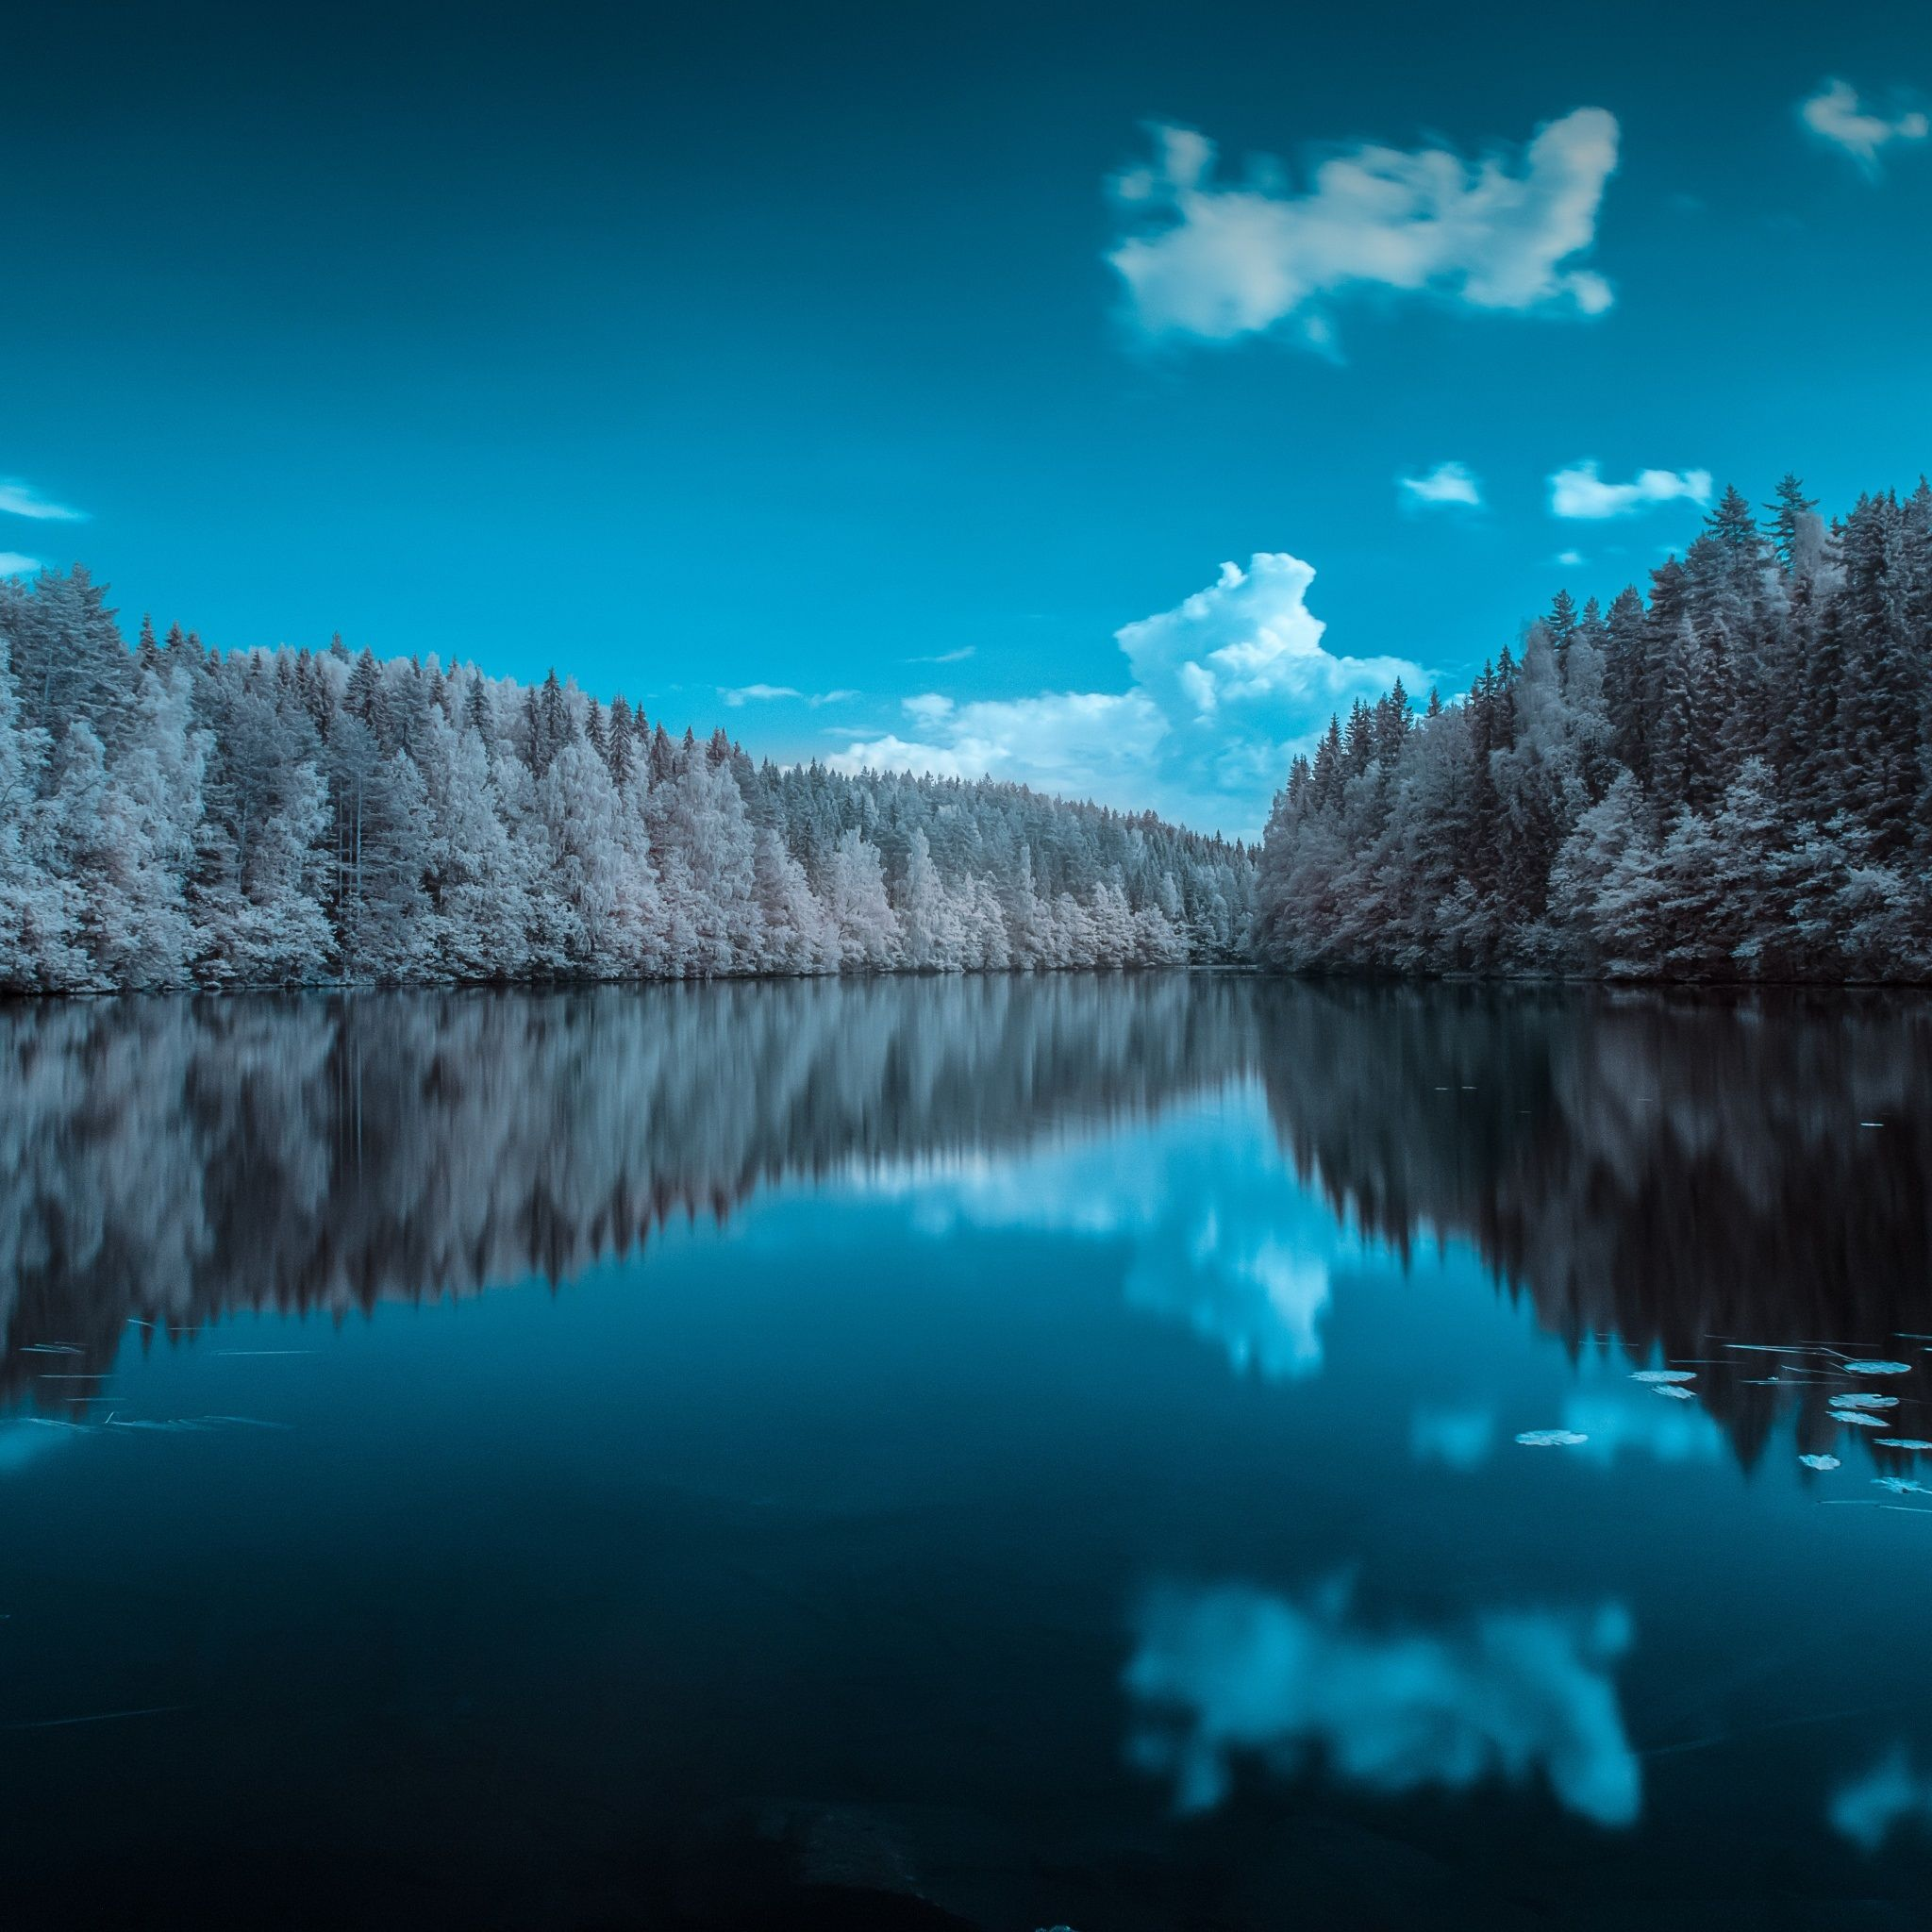 Finland Forest Lake Tap To See More Ombre Styled Peaceful Lake Wallpapers Mobile9 Forest Lake Ipad Wallpaper Ipad Air Wallpaper